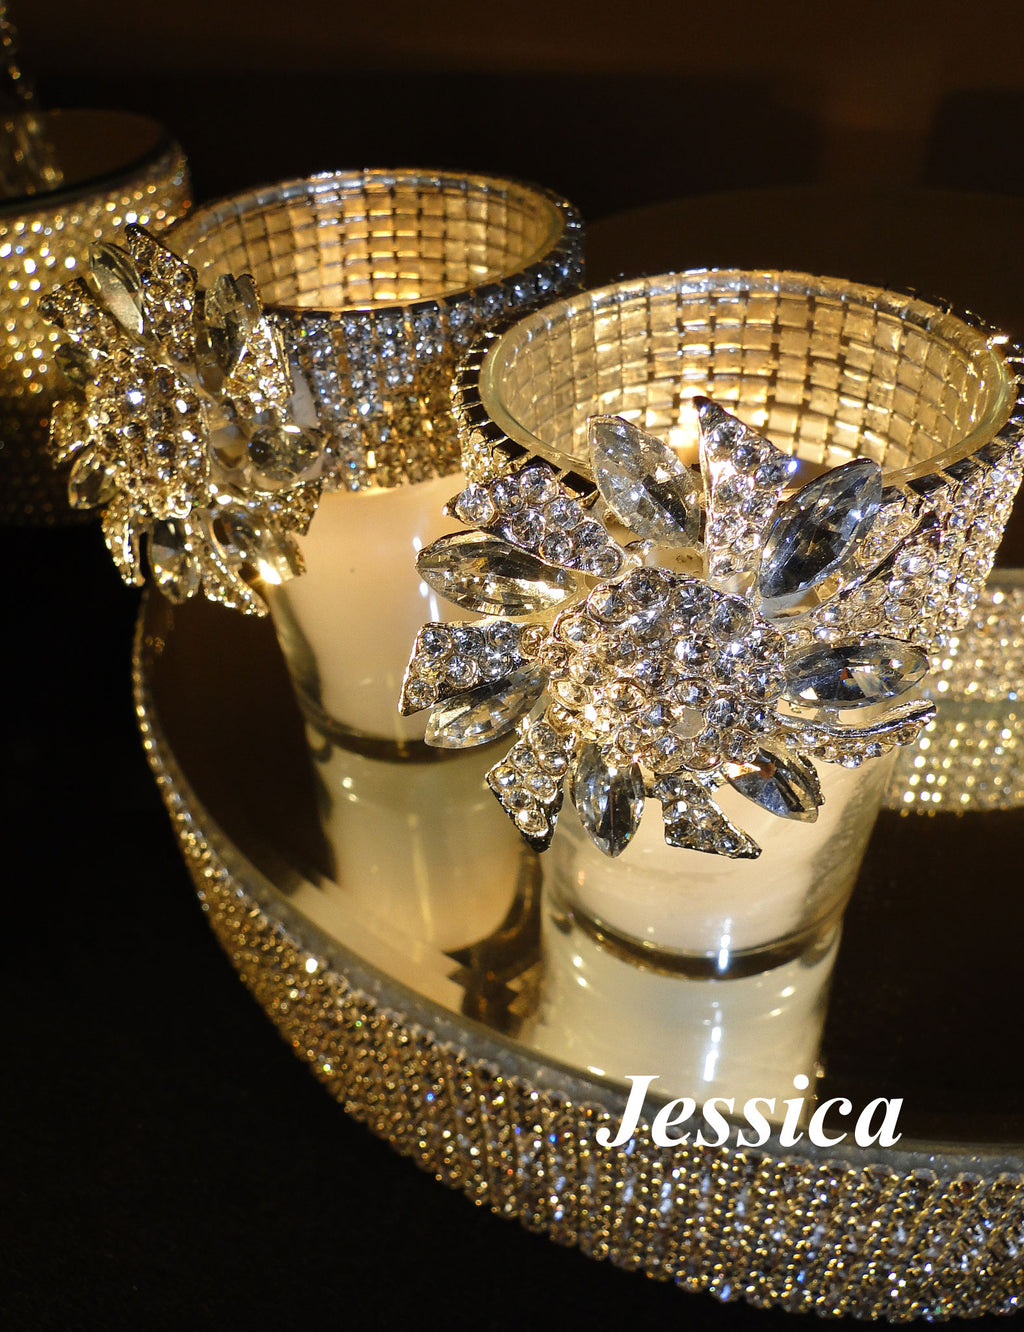 Two votive holders sit on a mirrored platform decorated with clear brooches.